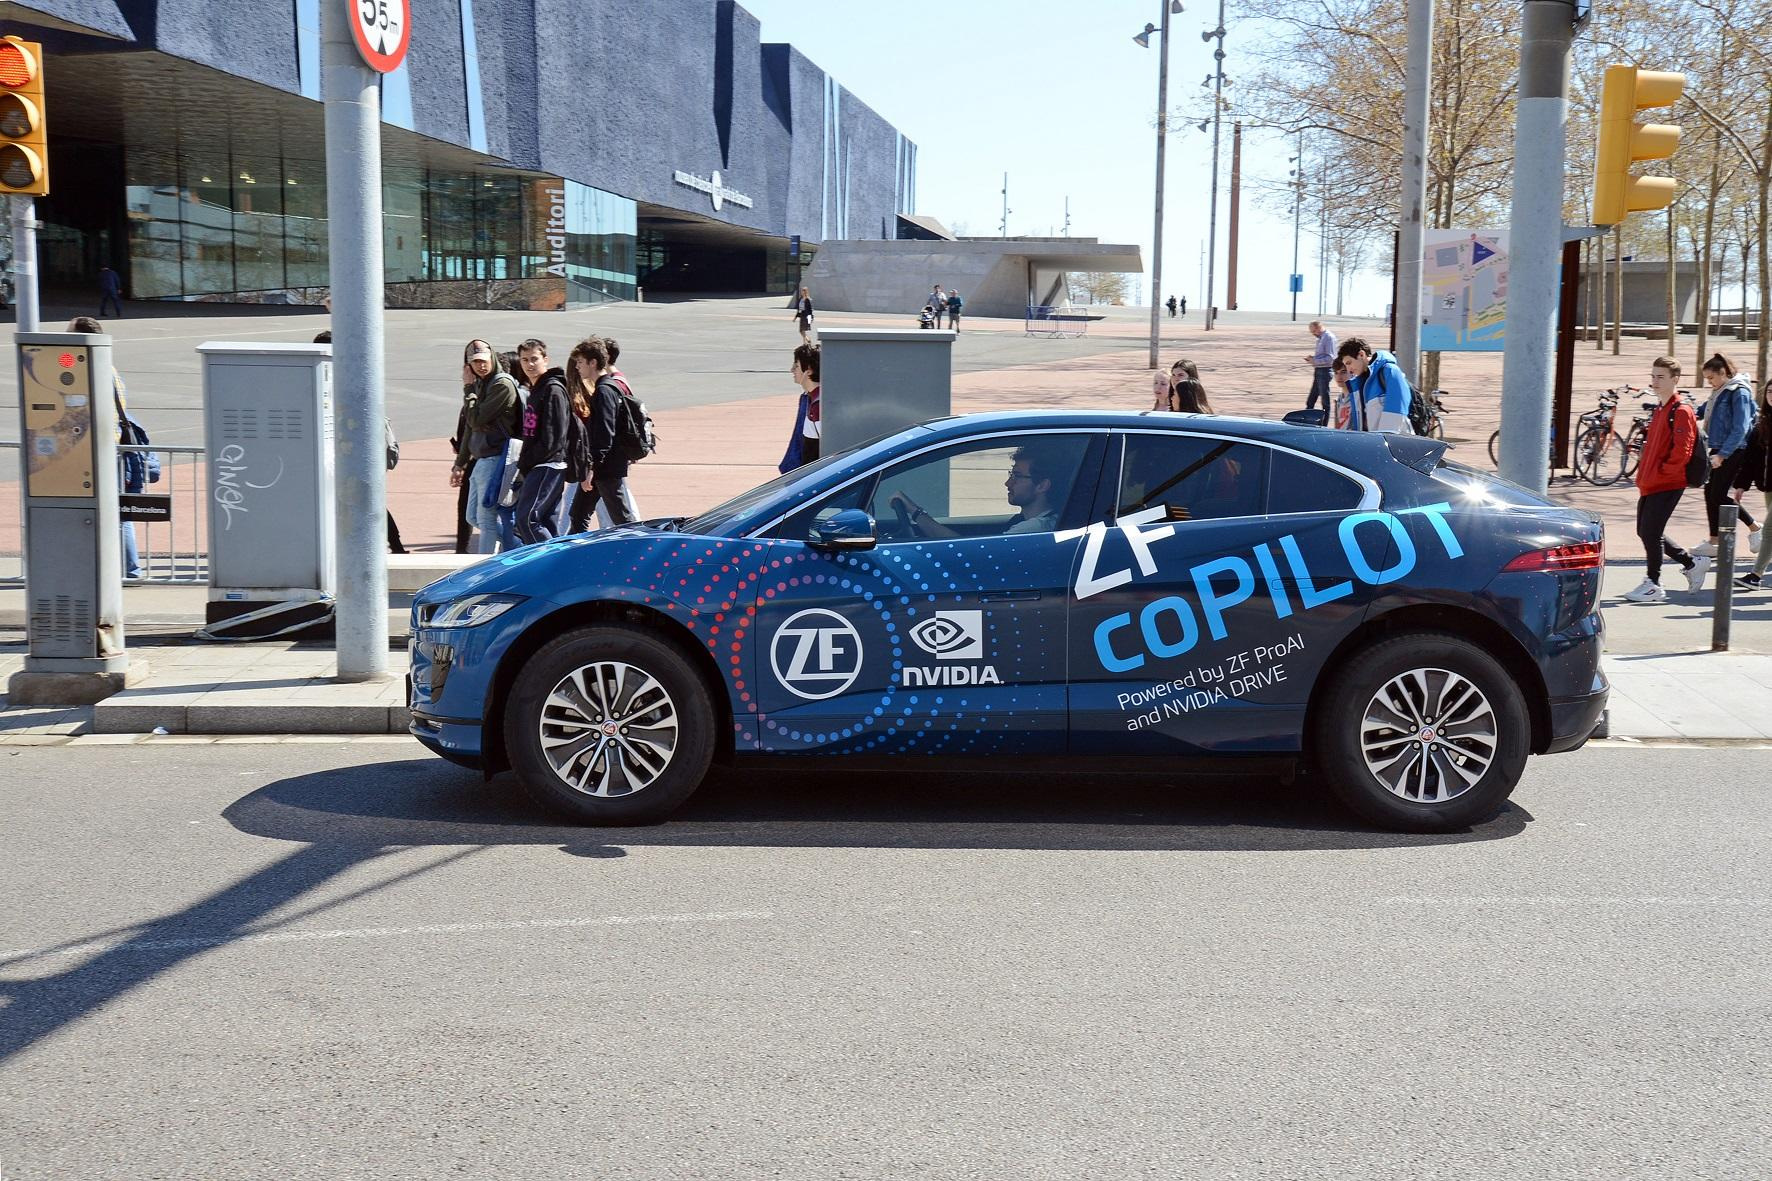 ZF launches coPILOT system for next-gem ADAS, Auto News, ET Auto